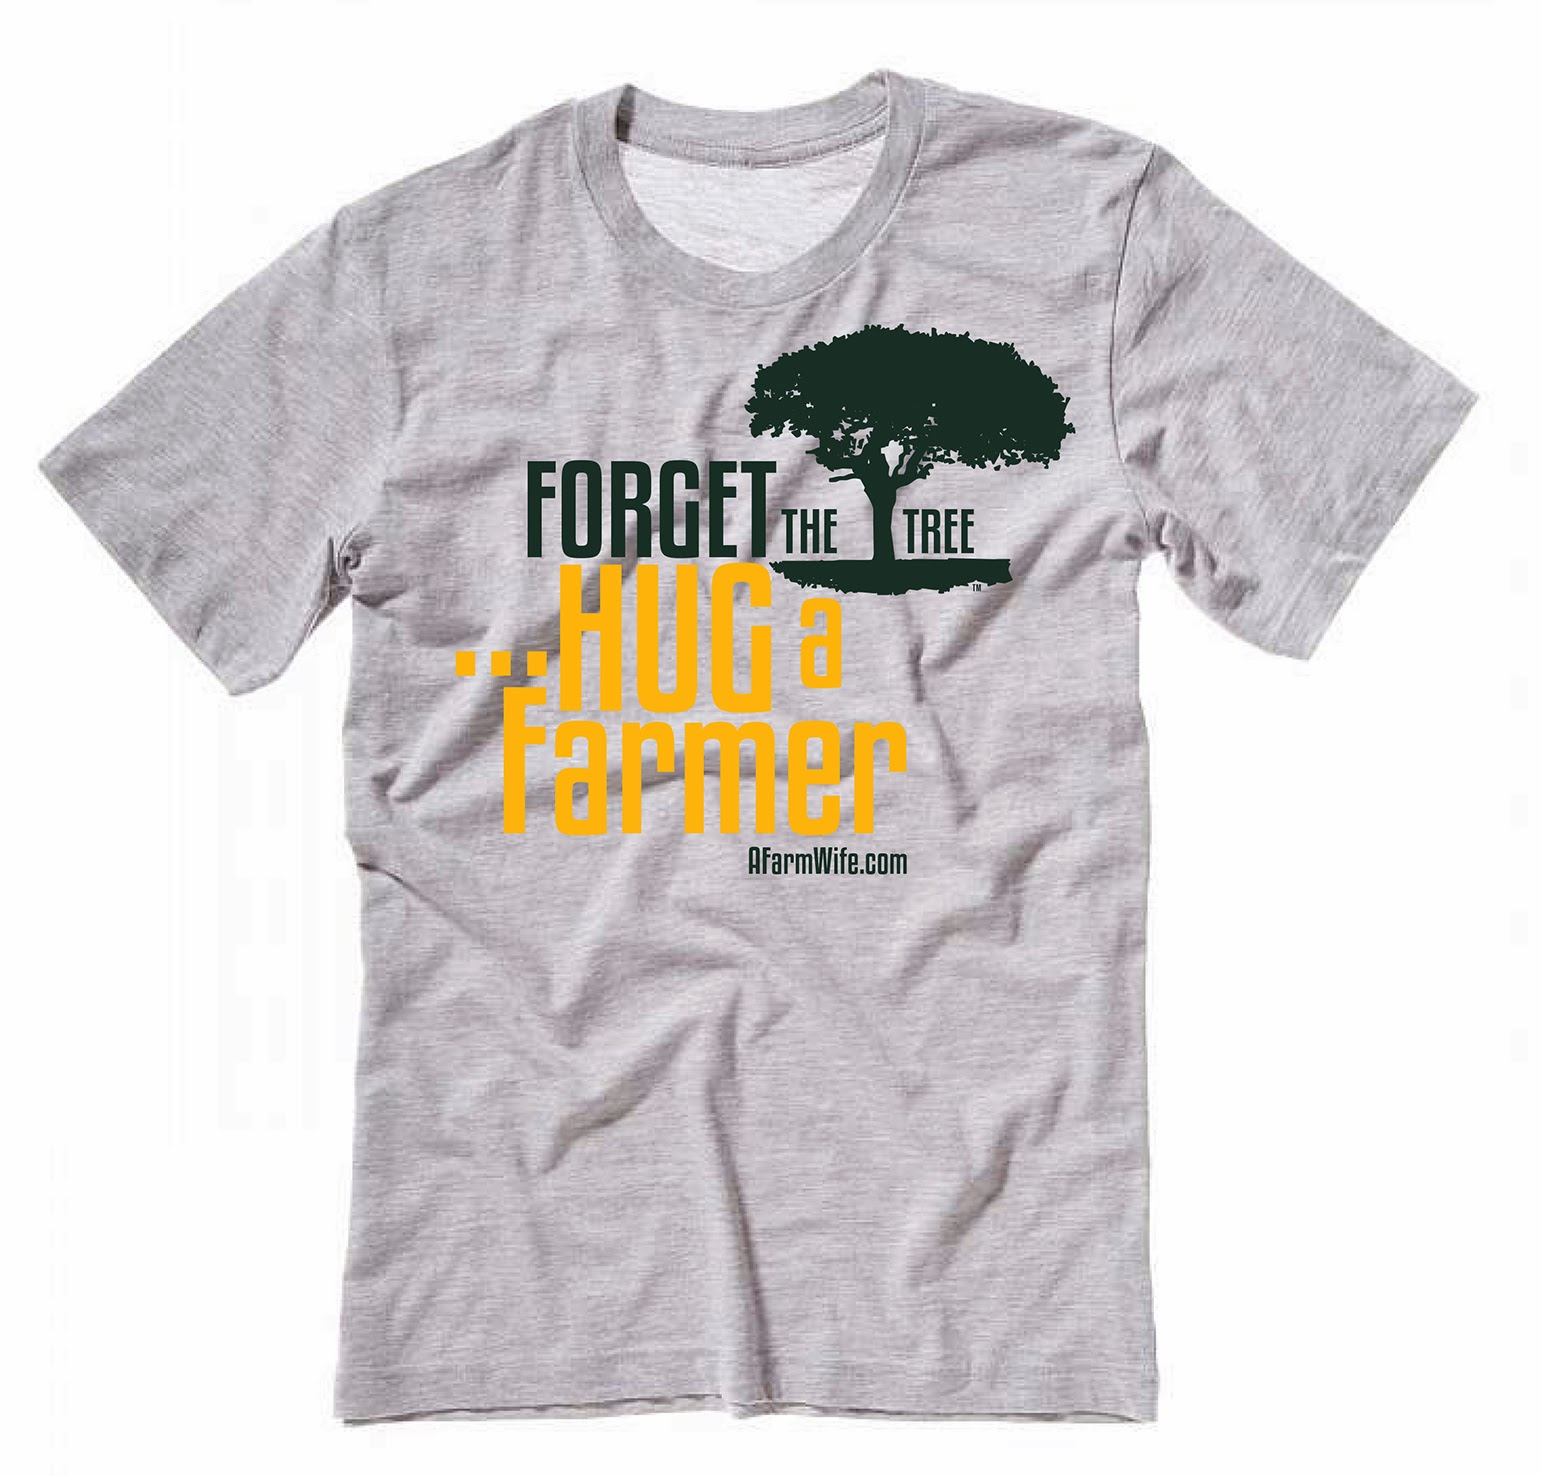 Buy Forget the Tree . . .Hug a Farmer T-Shirt - While Supplies Last